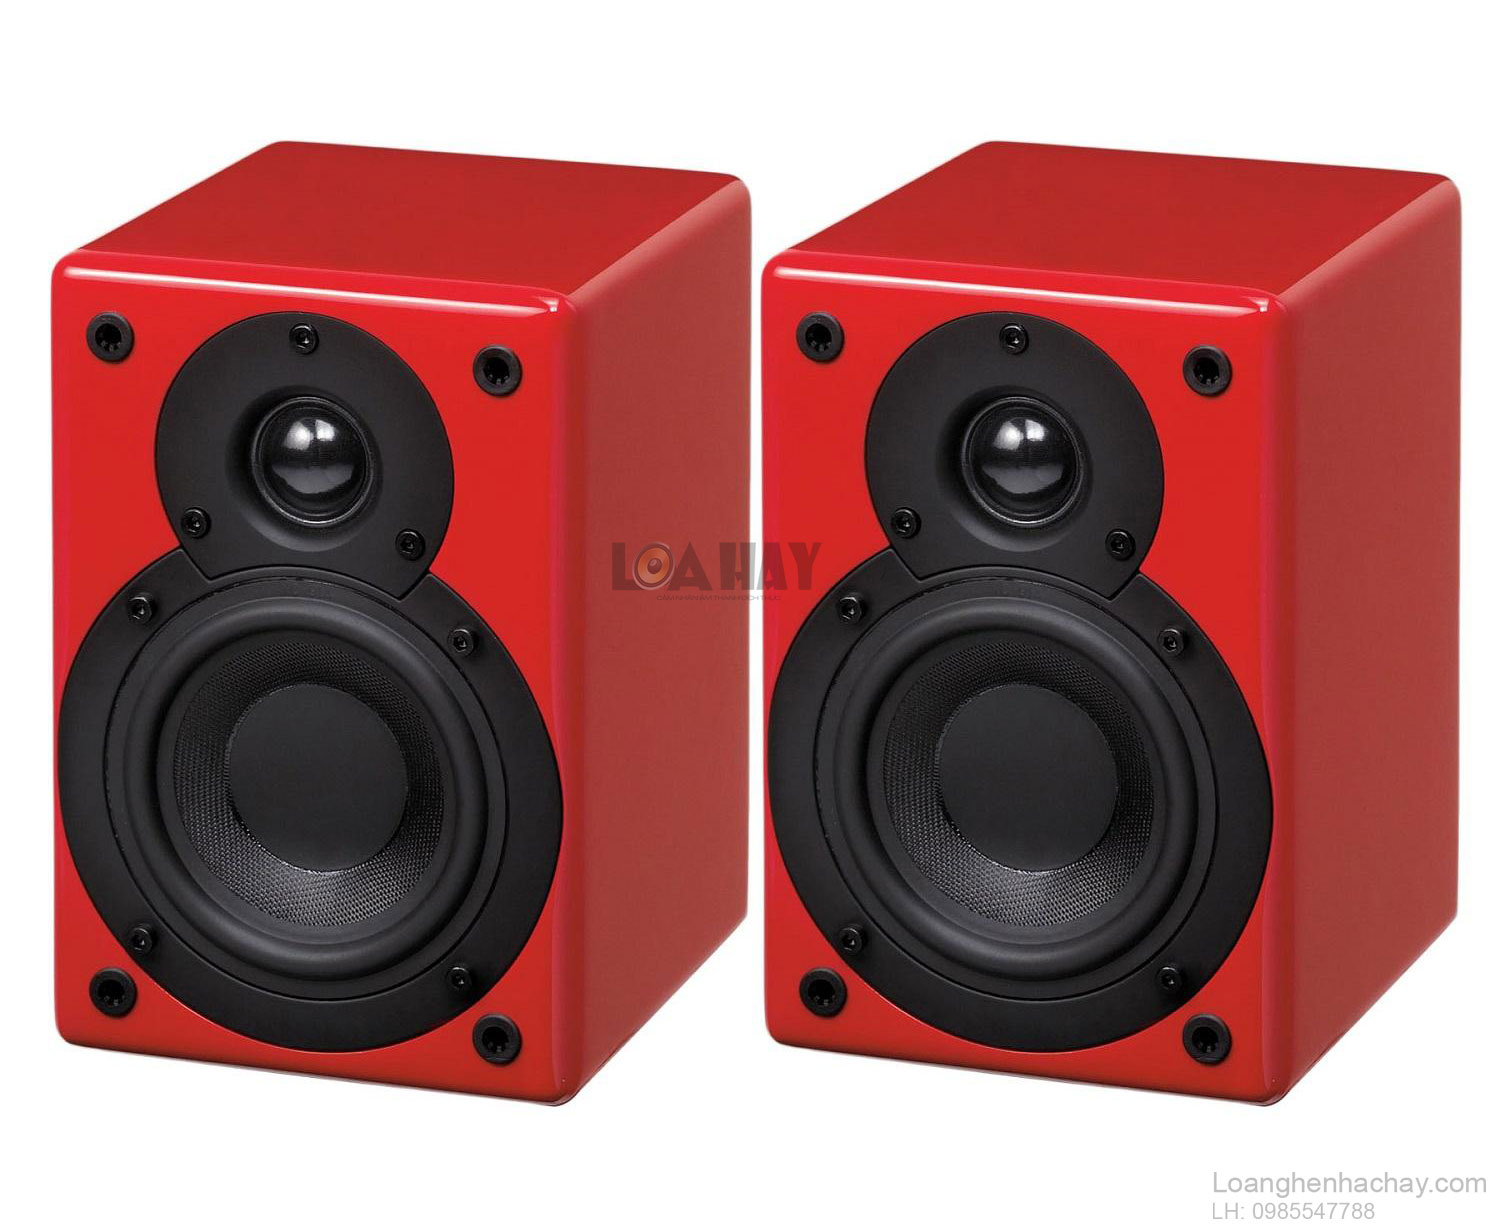 loa scansonic s3 bt red